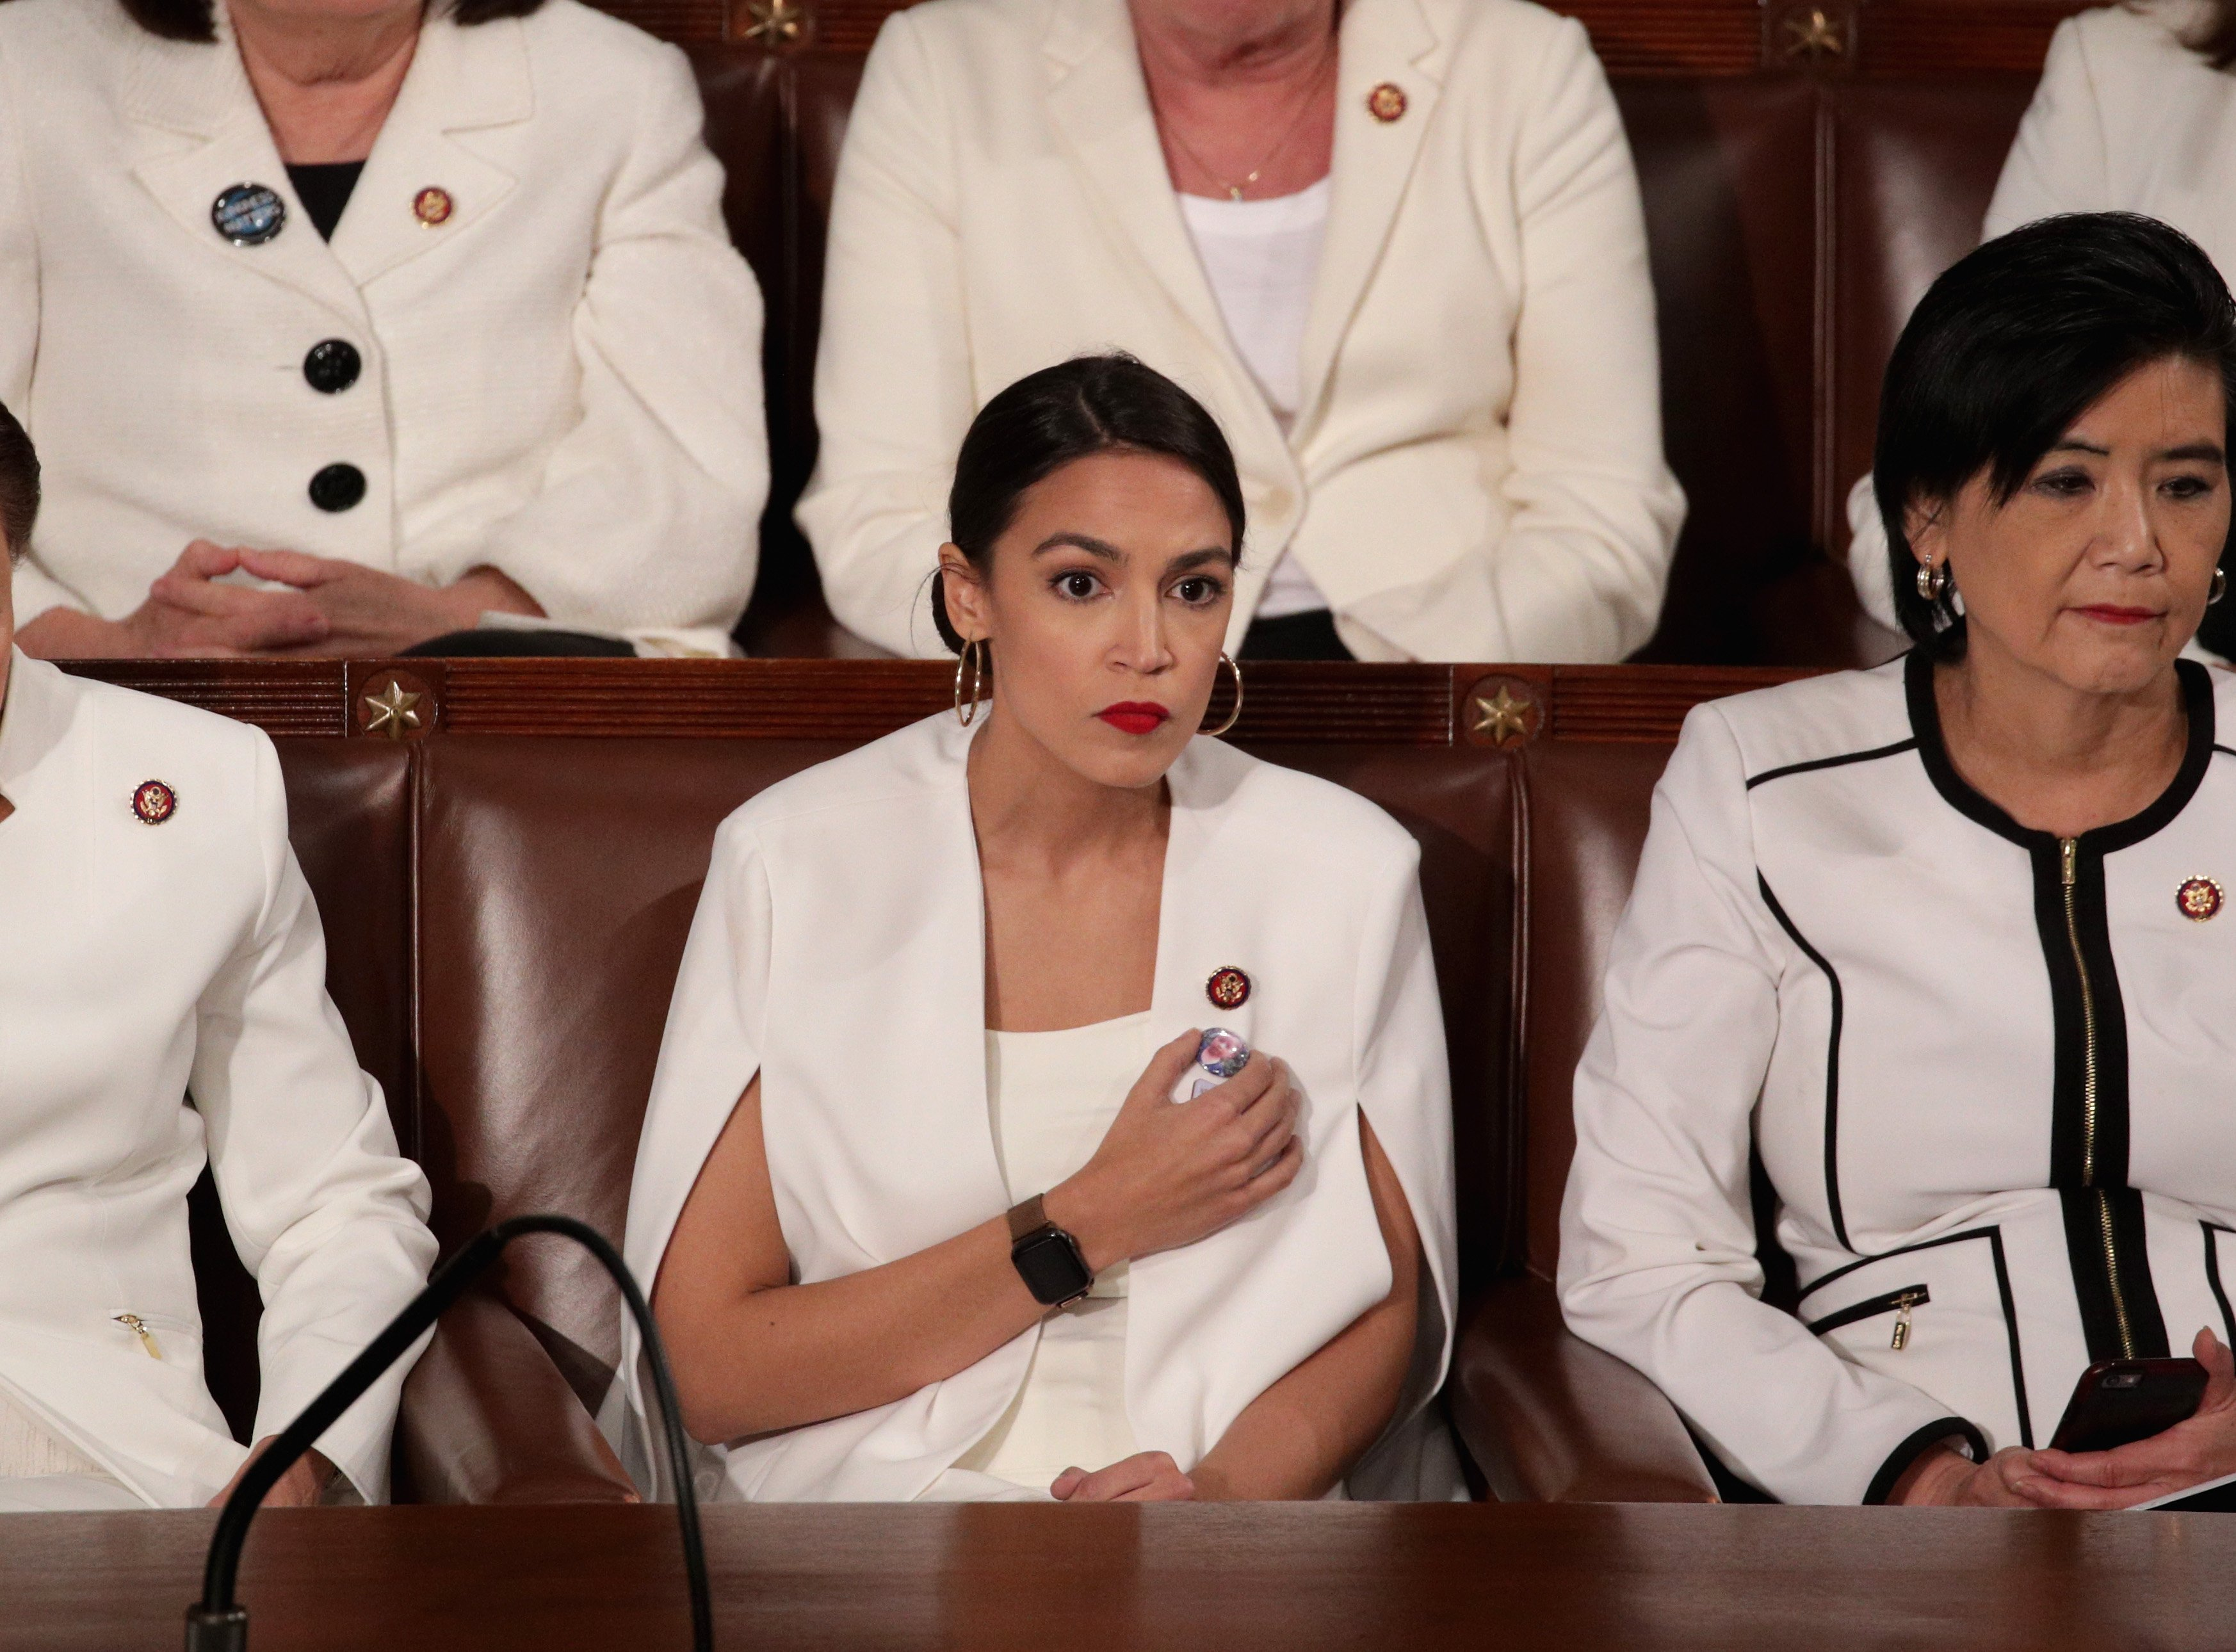 Alexandria Ocasio-Cortez at the State of the Union Speech in February 2019 | Photo: Getty Images